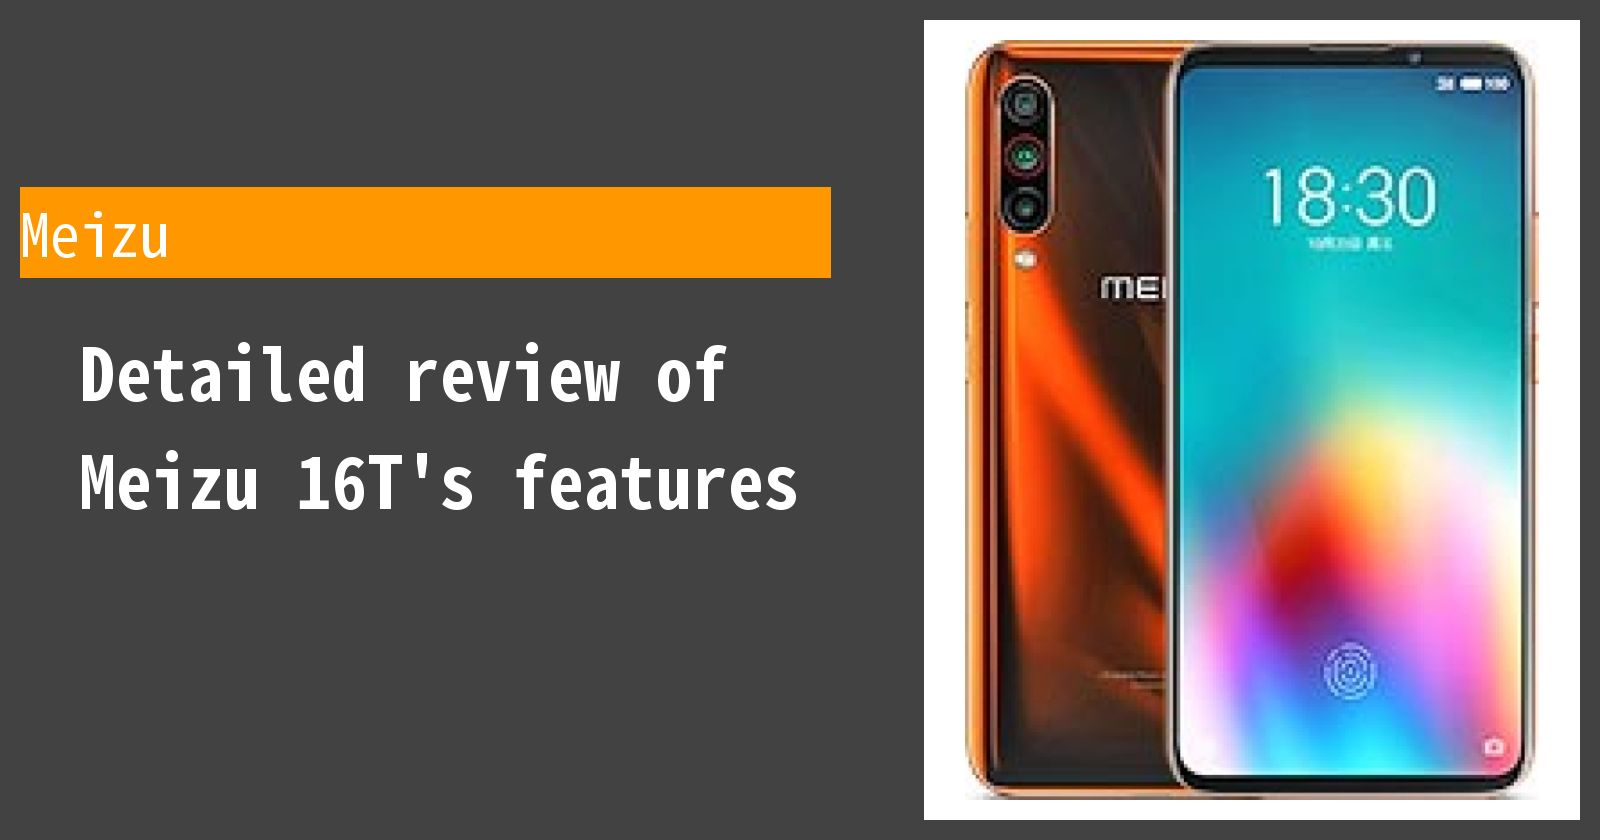 Detailed review of Meizu 16T's features